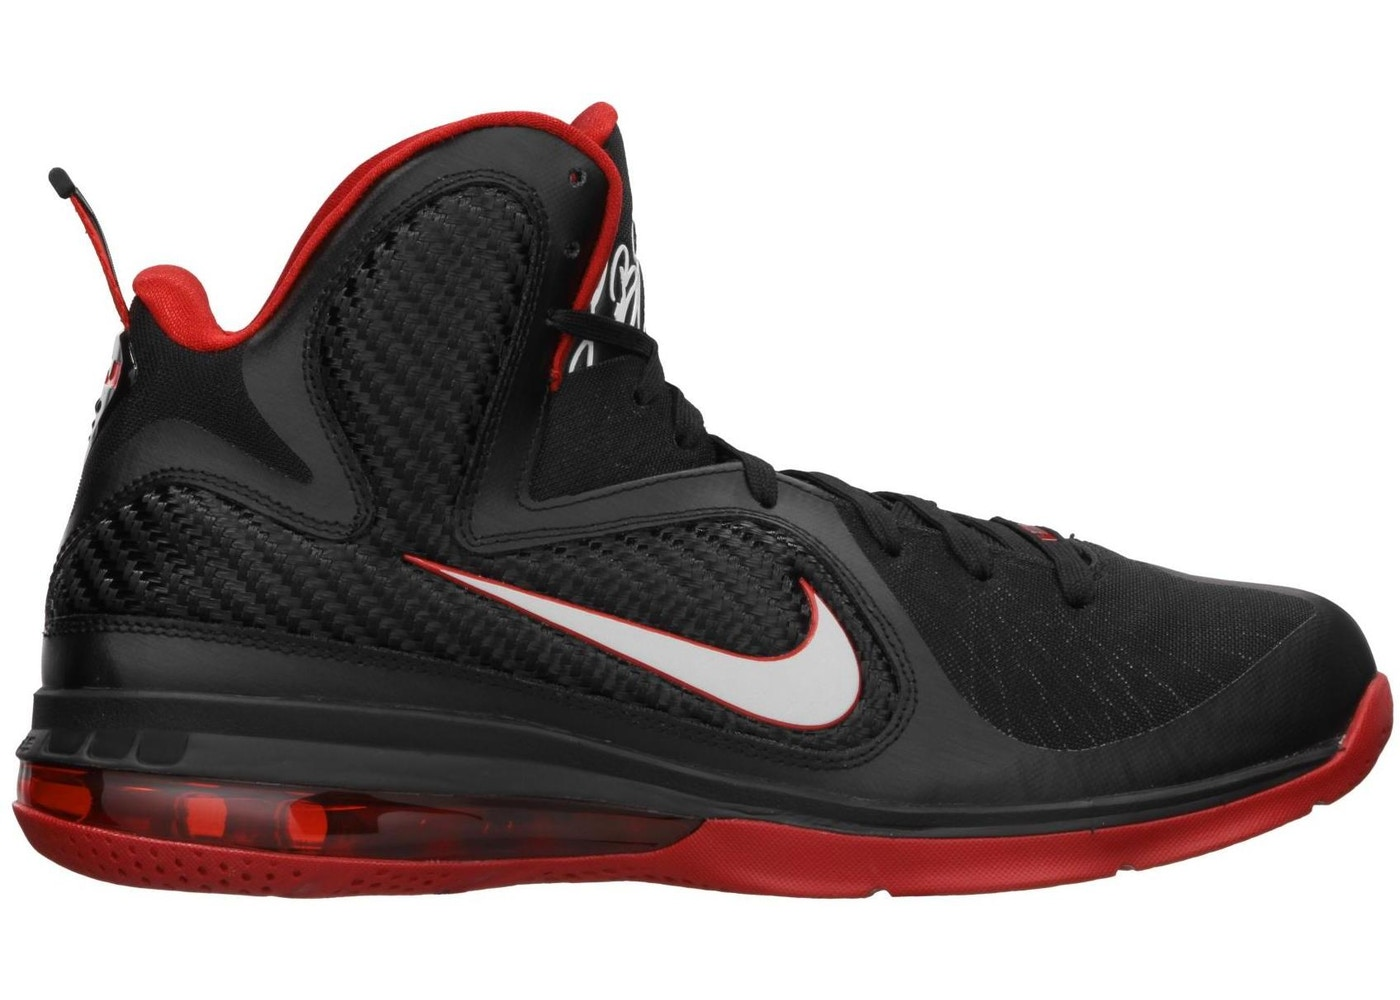 hot sales 3df2e 8a75d LeBron 9 Miami Heat Away